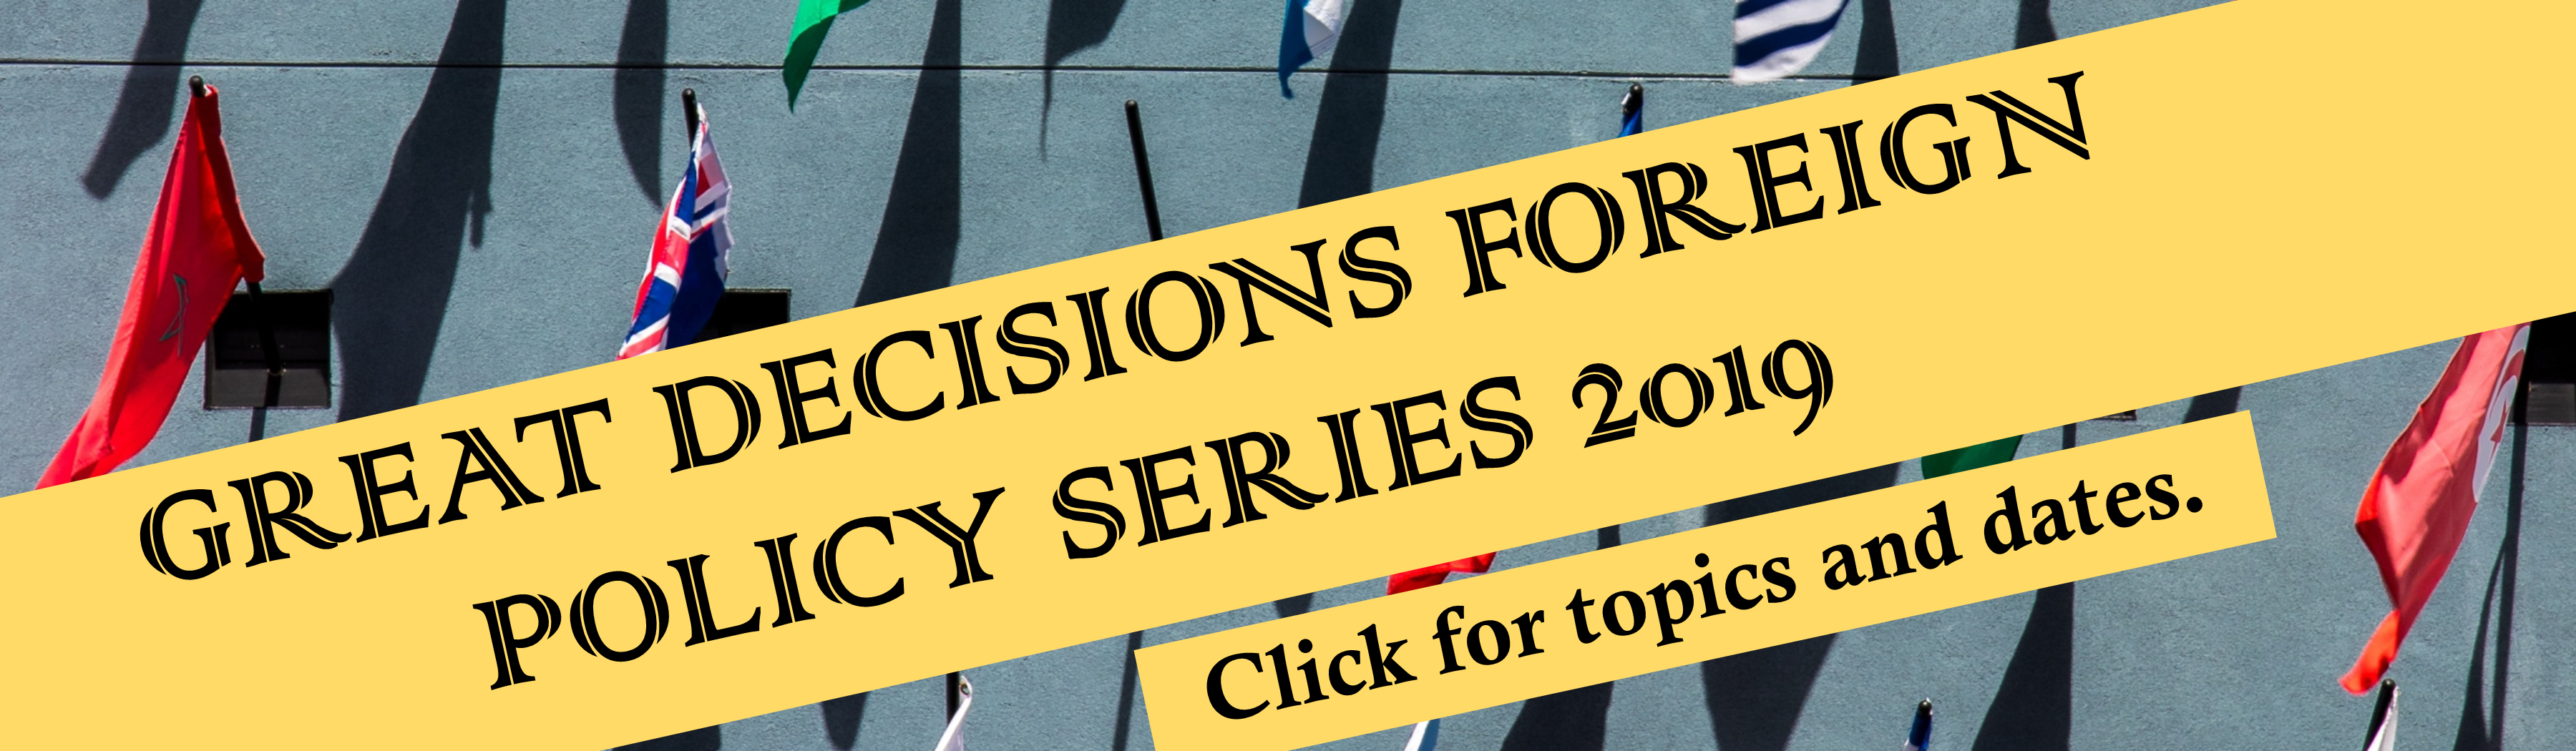 GreatDecisions2019WebsiteBanner